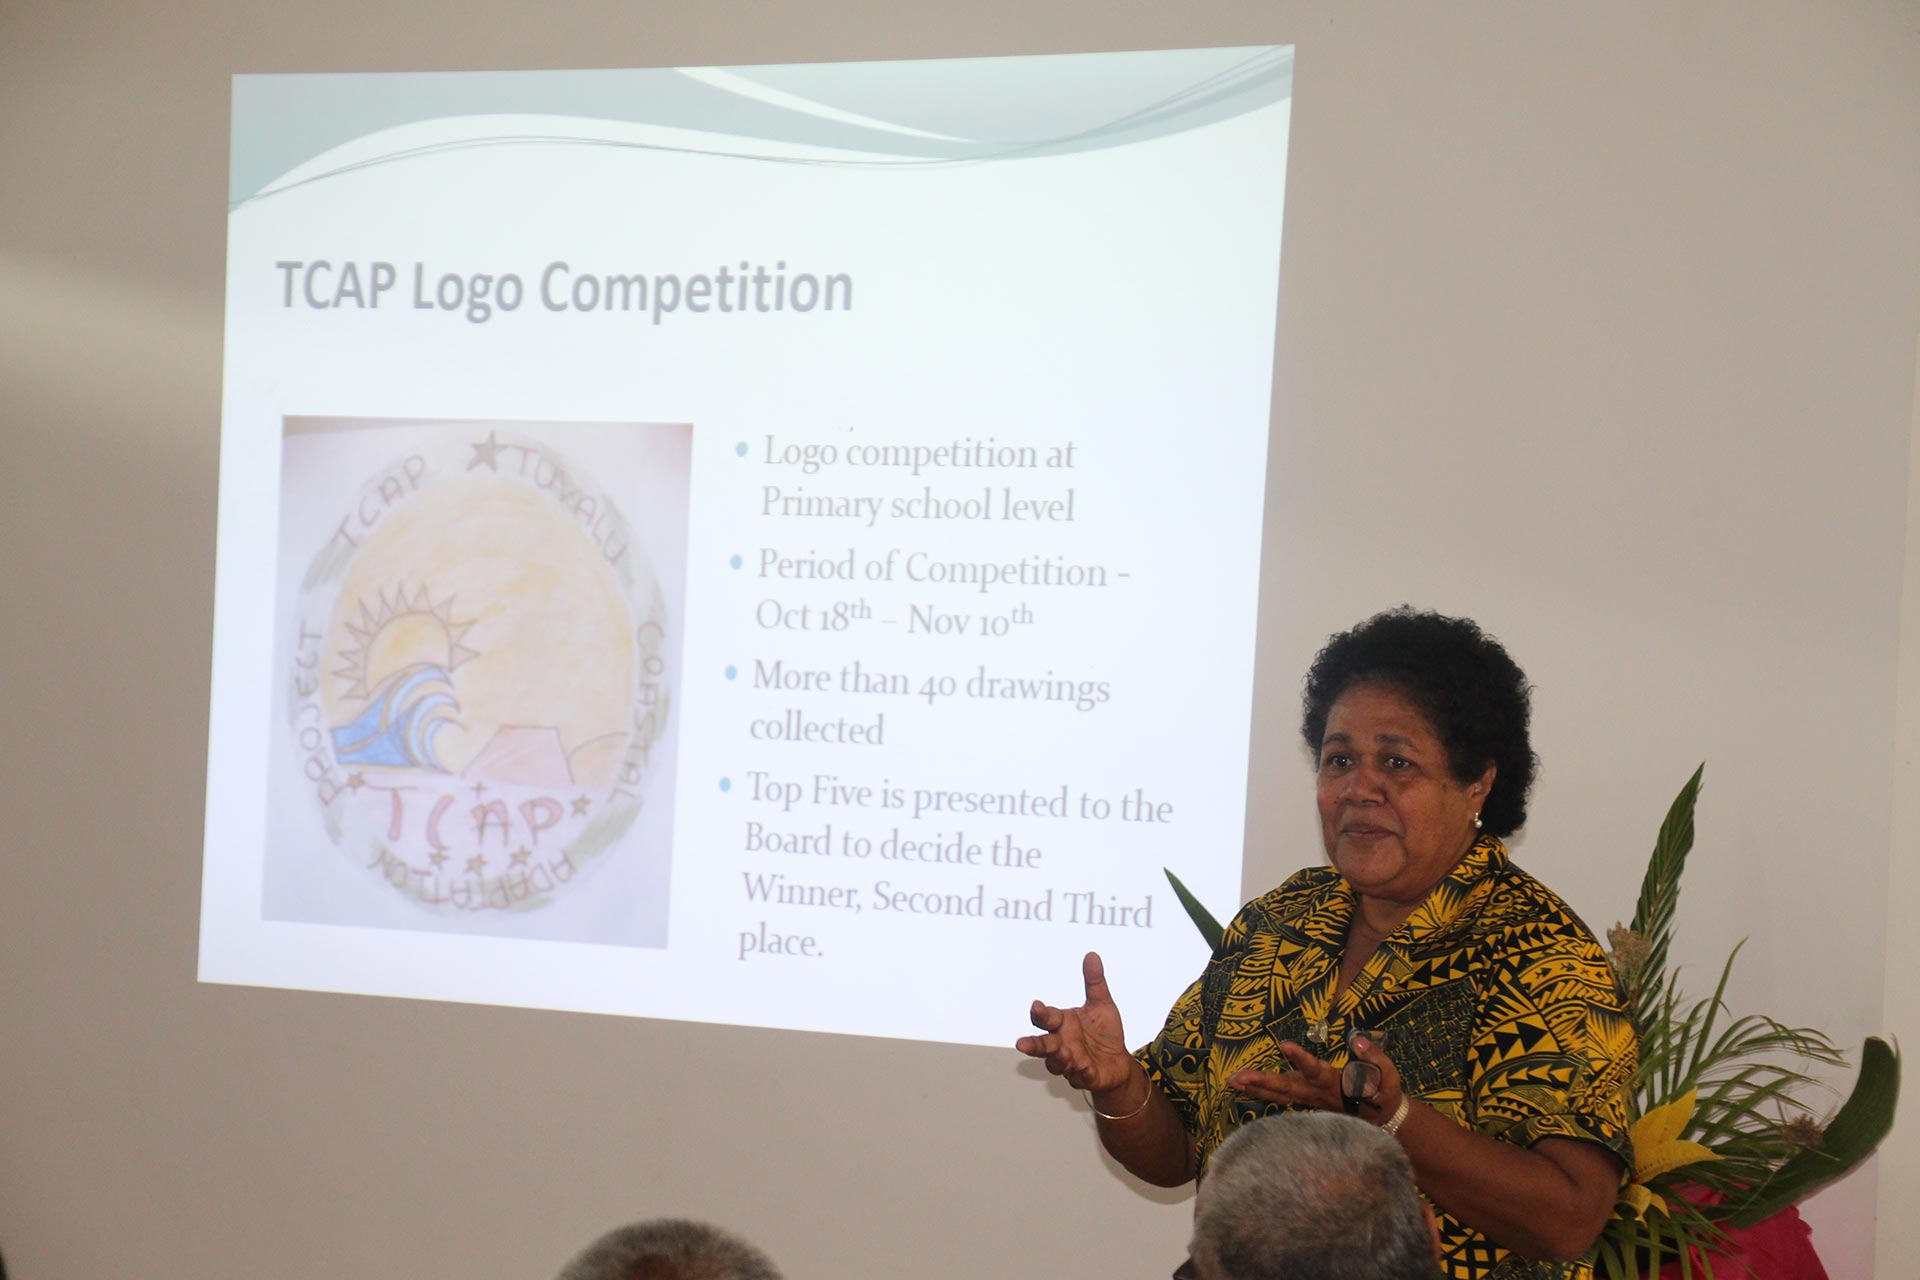 """Launch of logo competition. Photo by UNDP  The Tuvalu Coastal Adaptation Project invited primary school students to design a project logo. 12-year old Ms Fogaese Lisale of Funafuti won the contest"""" -- see  https://twitter.com/TCAPforTu8/status/958560191708004353"""